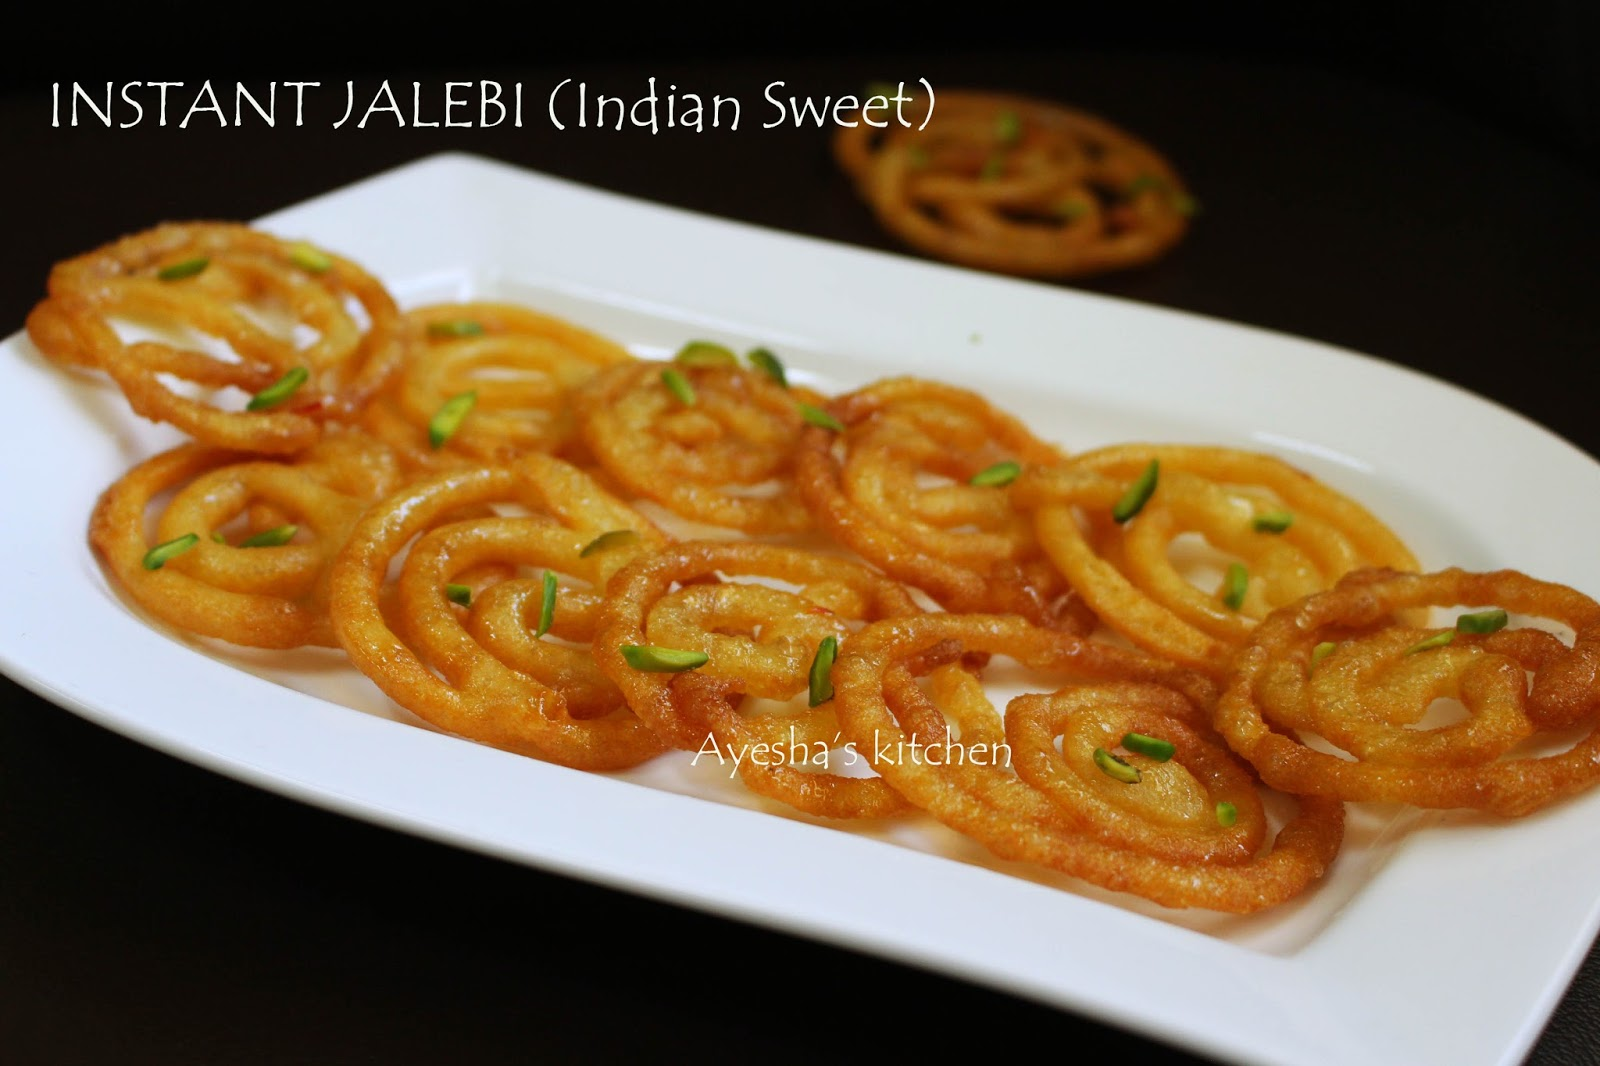 Instant jalebi recipe how to make crispy crunchy jalebi in 15 minutes simple jalebi recipe forumfinder Image collections